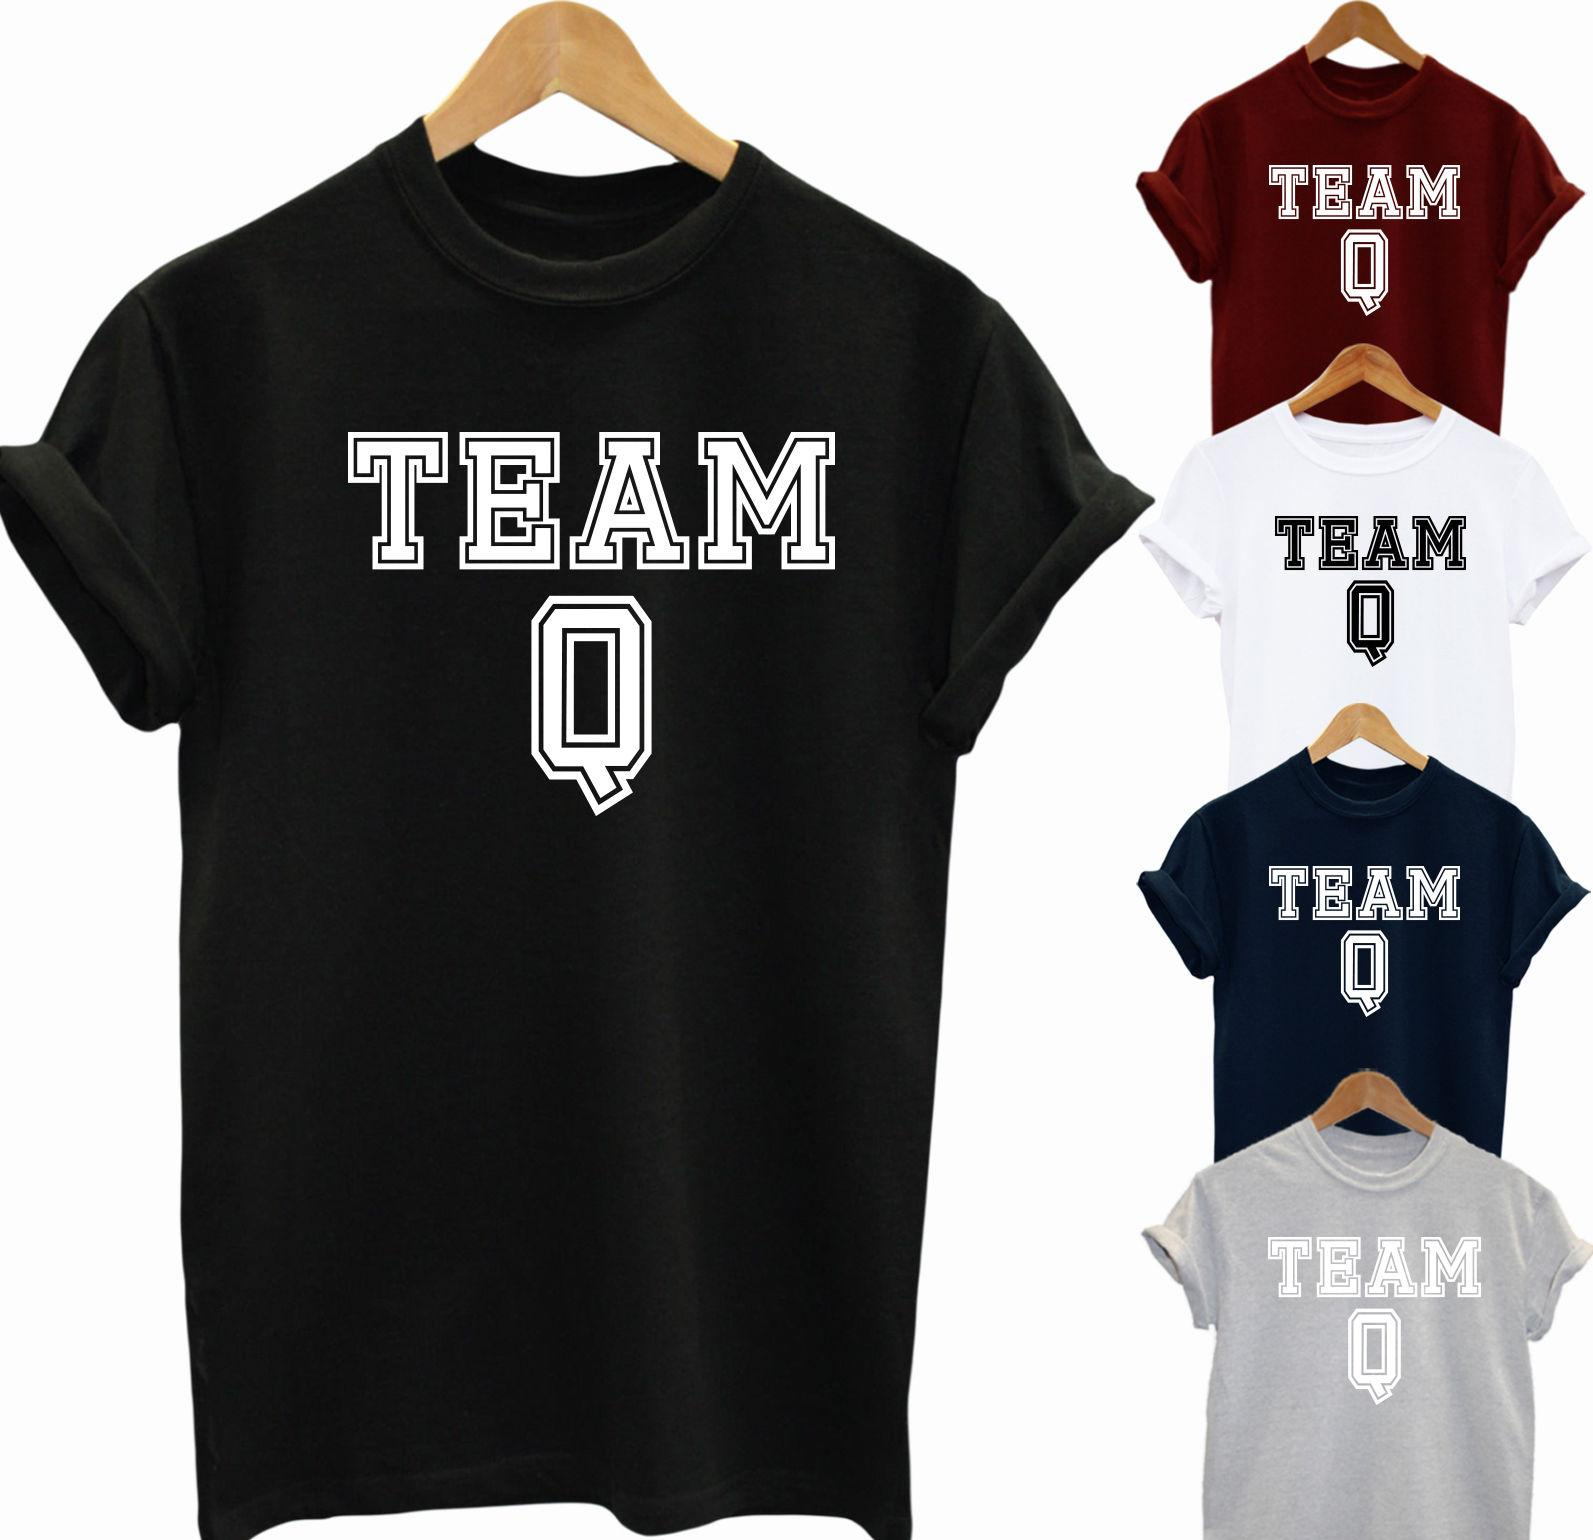 IMPRACTICAL Jokers TEAM Q TV SHOW Funny Humor College T SHIRT Party Tee Gift Funny Unisex Casual Quirky T Shirt Designs Purchase T Shirt From ...